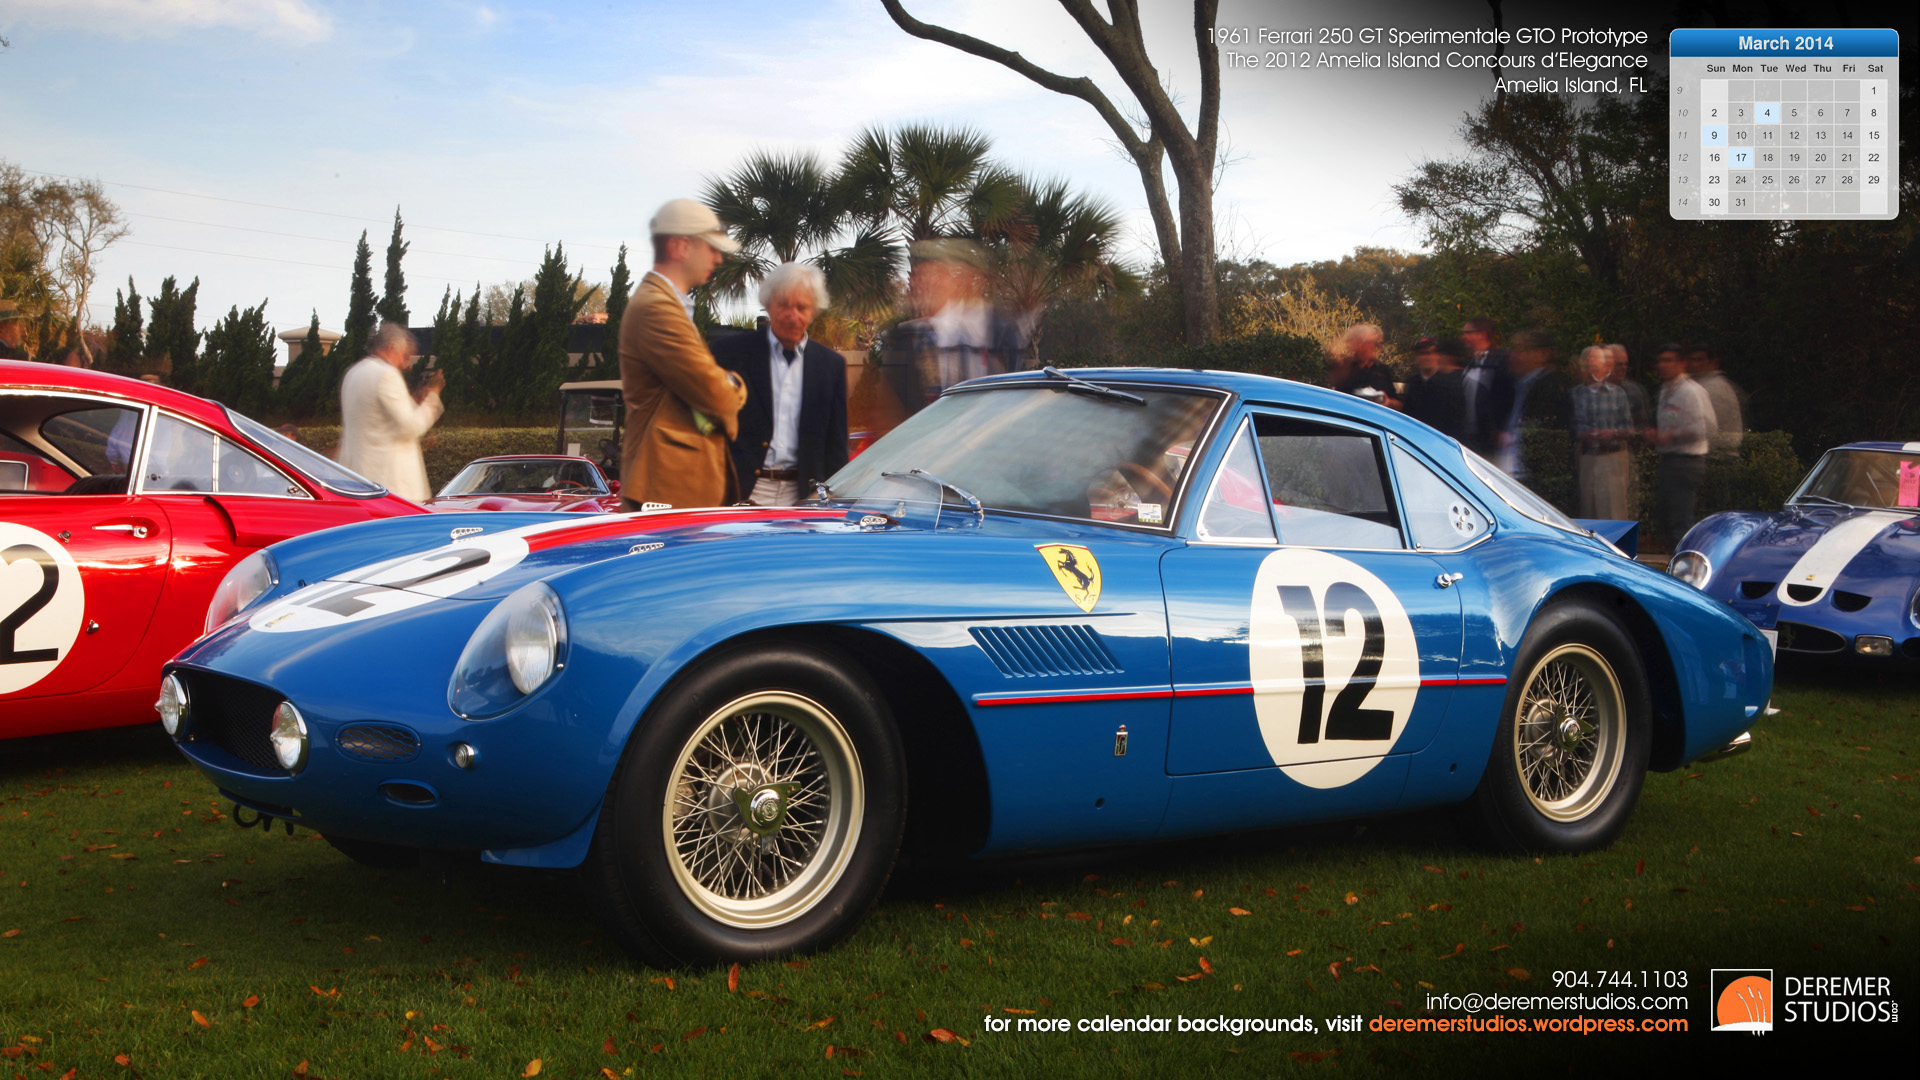 2014 03 March Wallpaper - 1961 Ferarri 250 GT Prototype